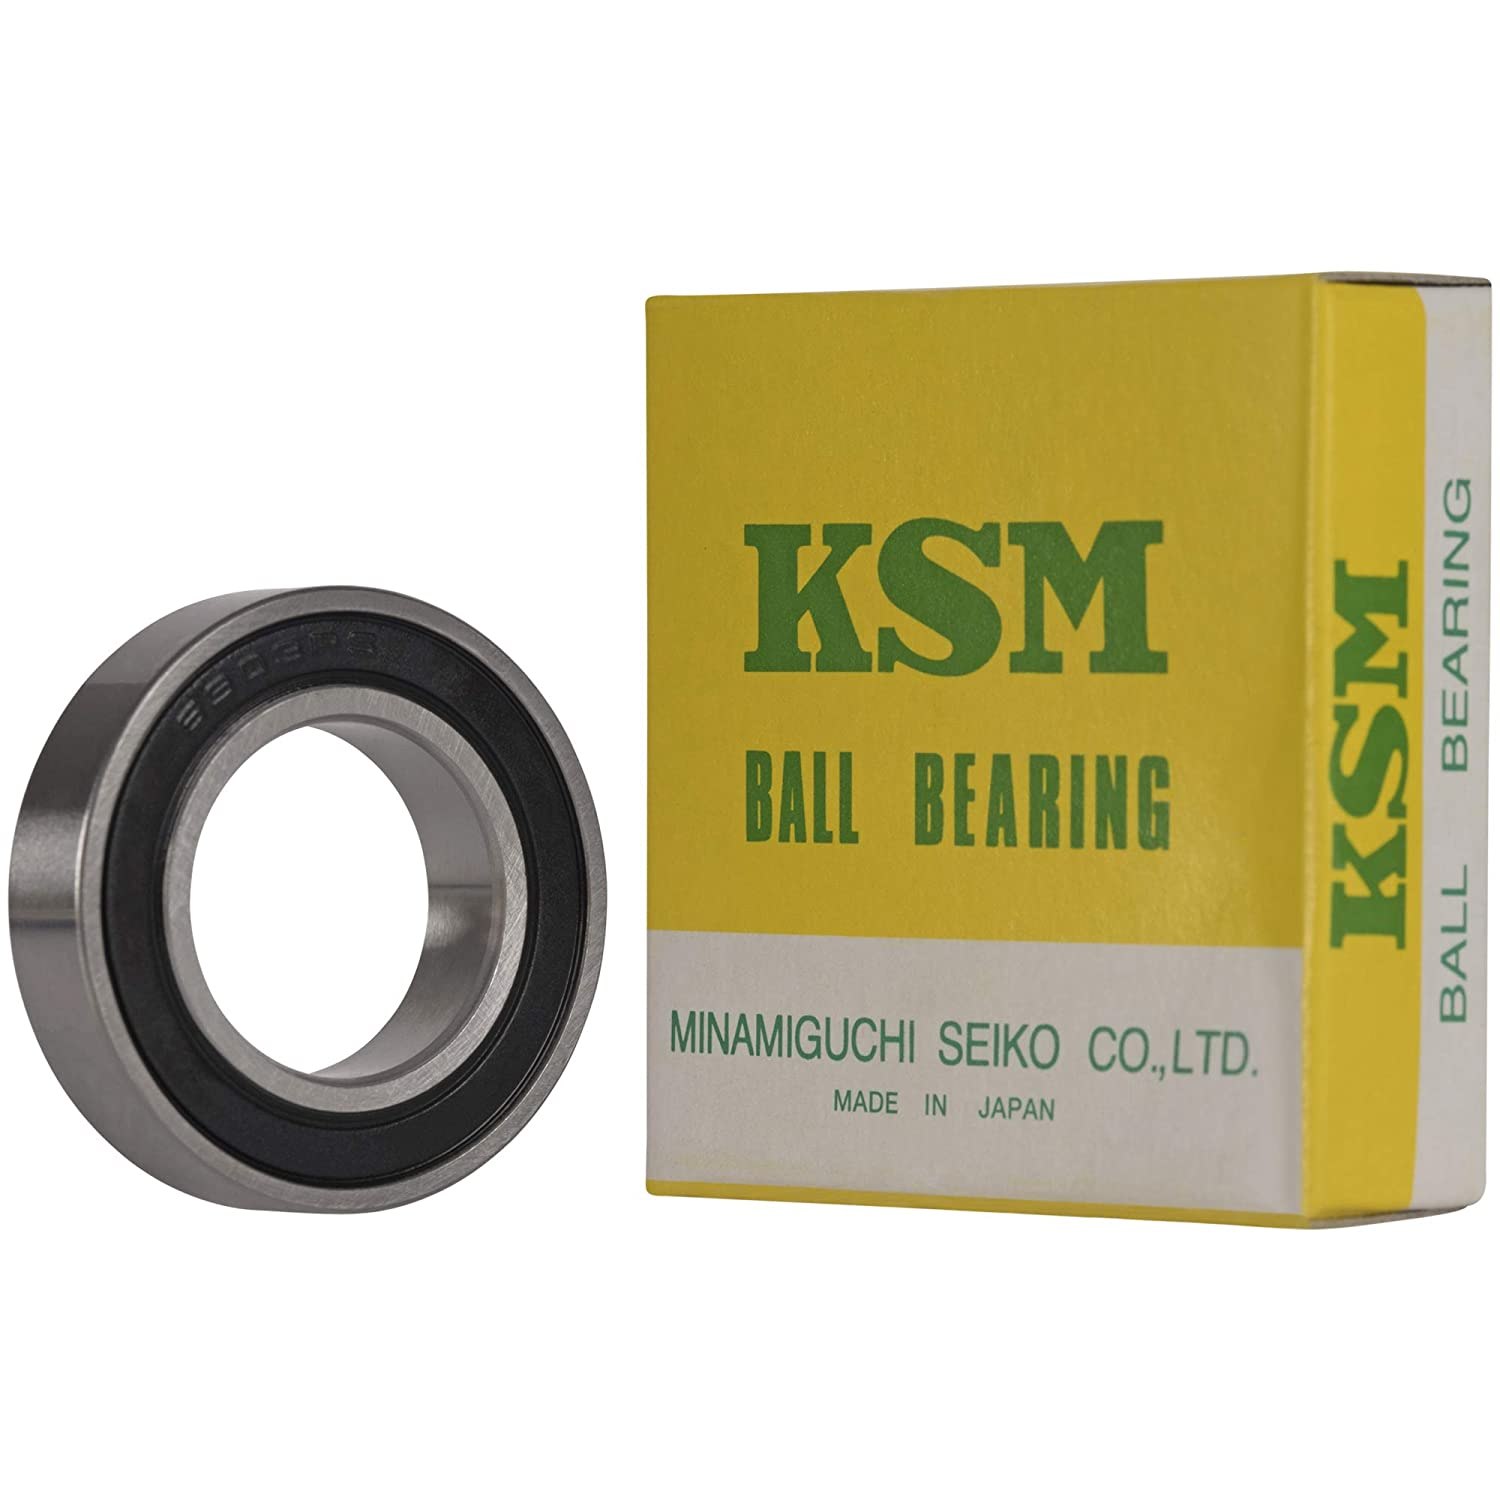 Ball Bearings Black Rubber Sealed Bearing 5 PCS 6801-2RS 12x21x5